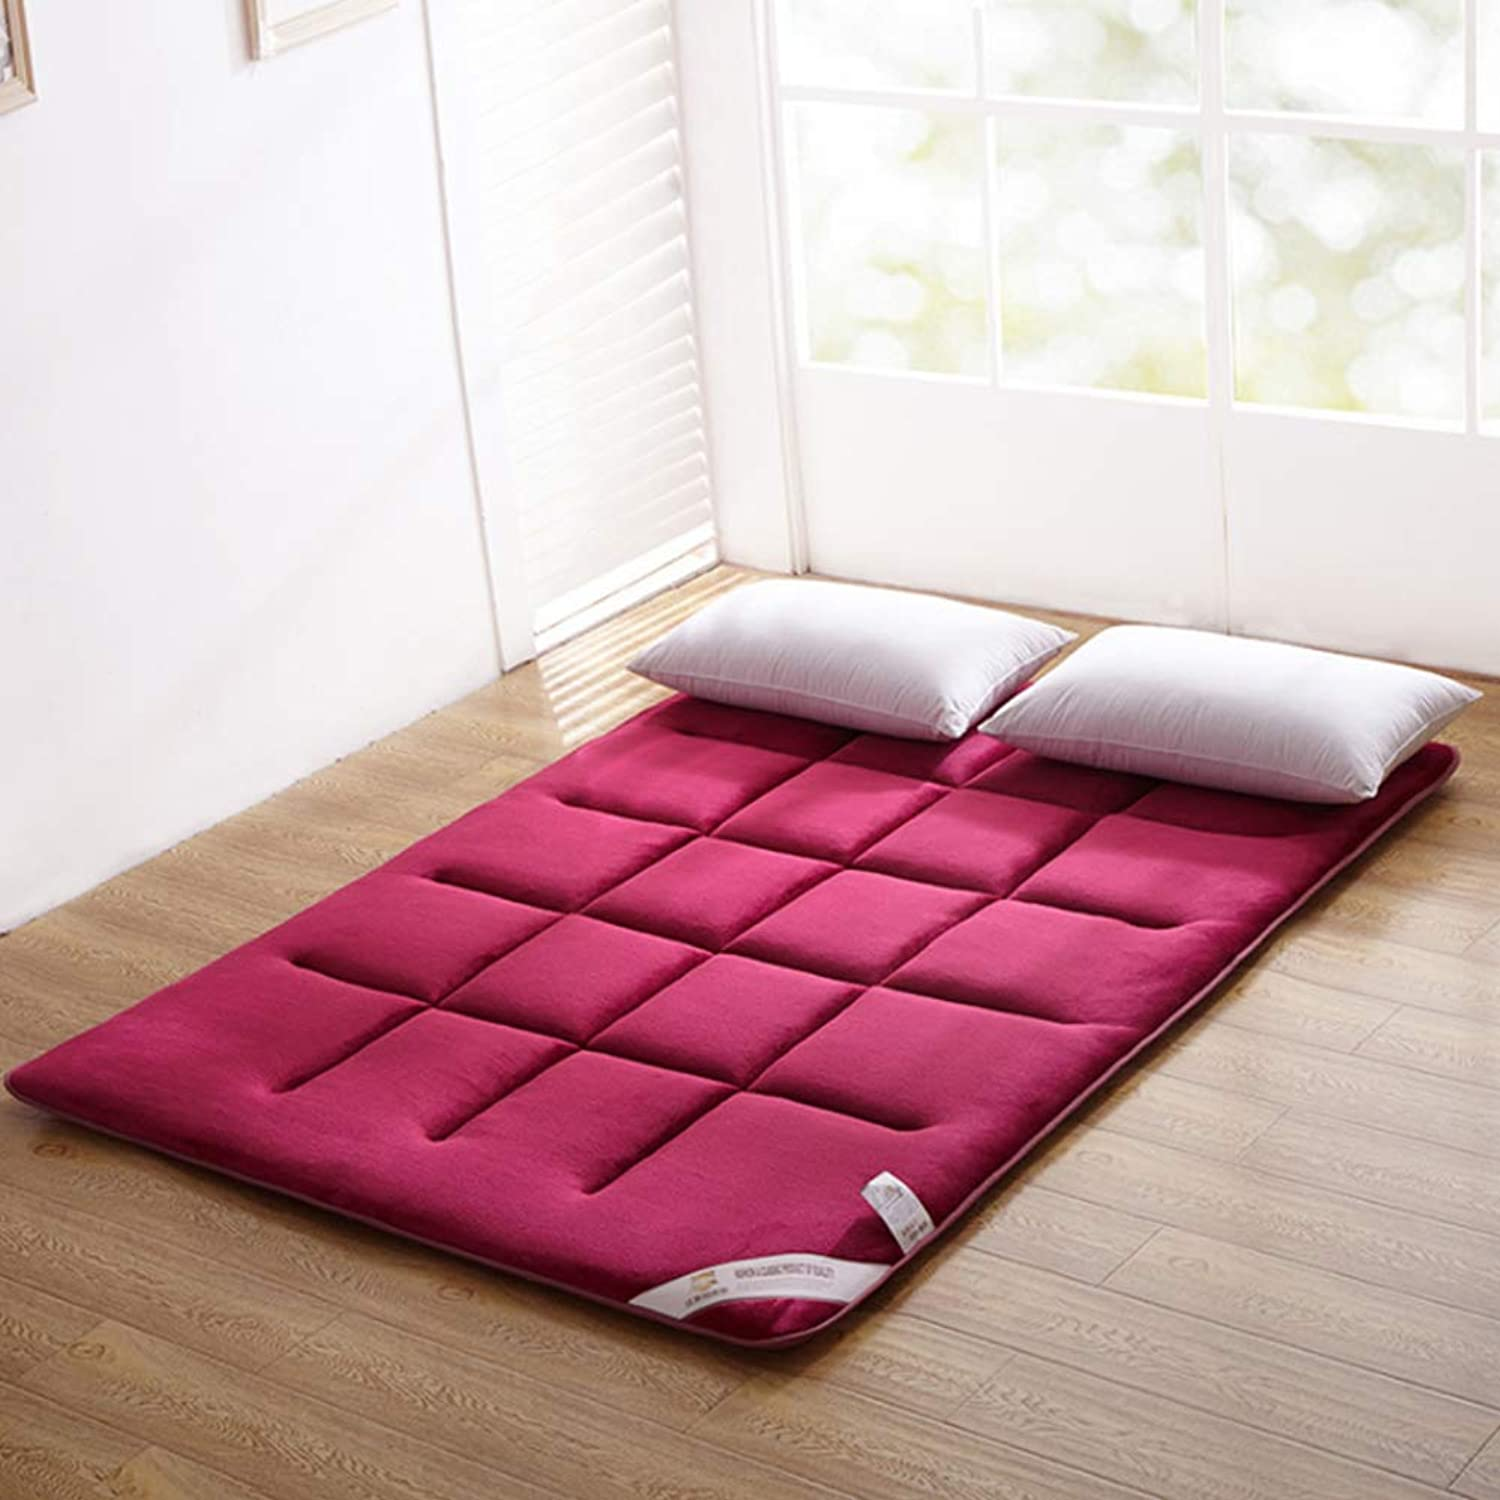 WYMNAME Foldable Japanese Floor futon Mattress, Non-Slip Tatami Floor mat Futon Mattress Topper for Bedroom Student Dormitory-pink Red 90x200cm(35x79inch)